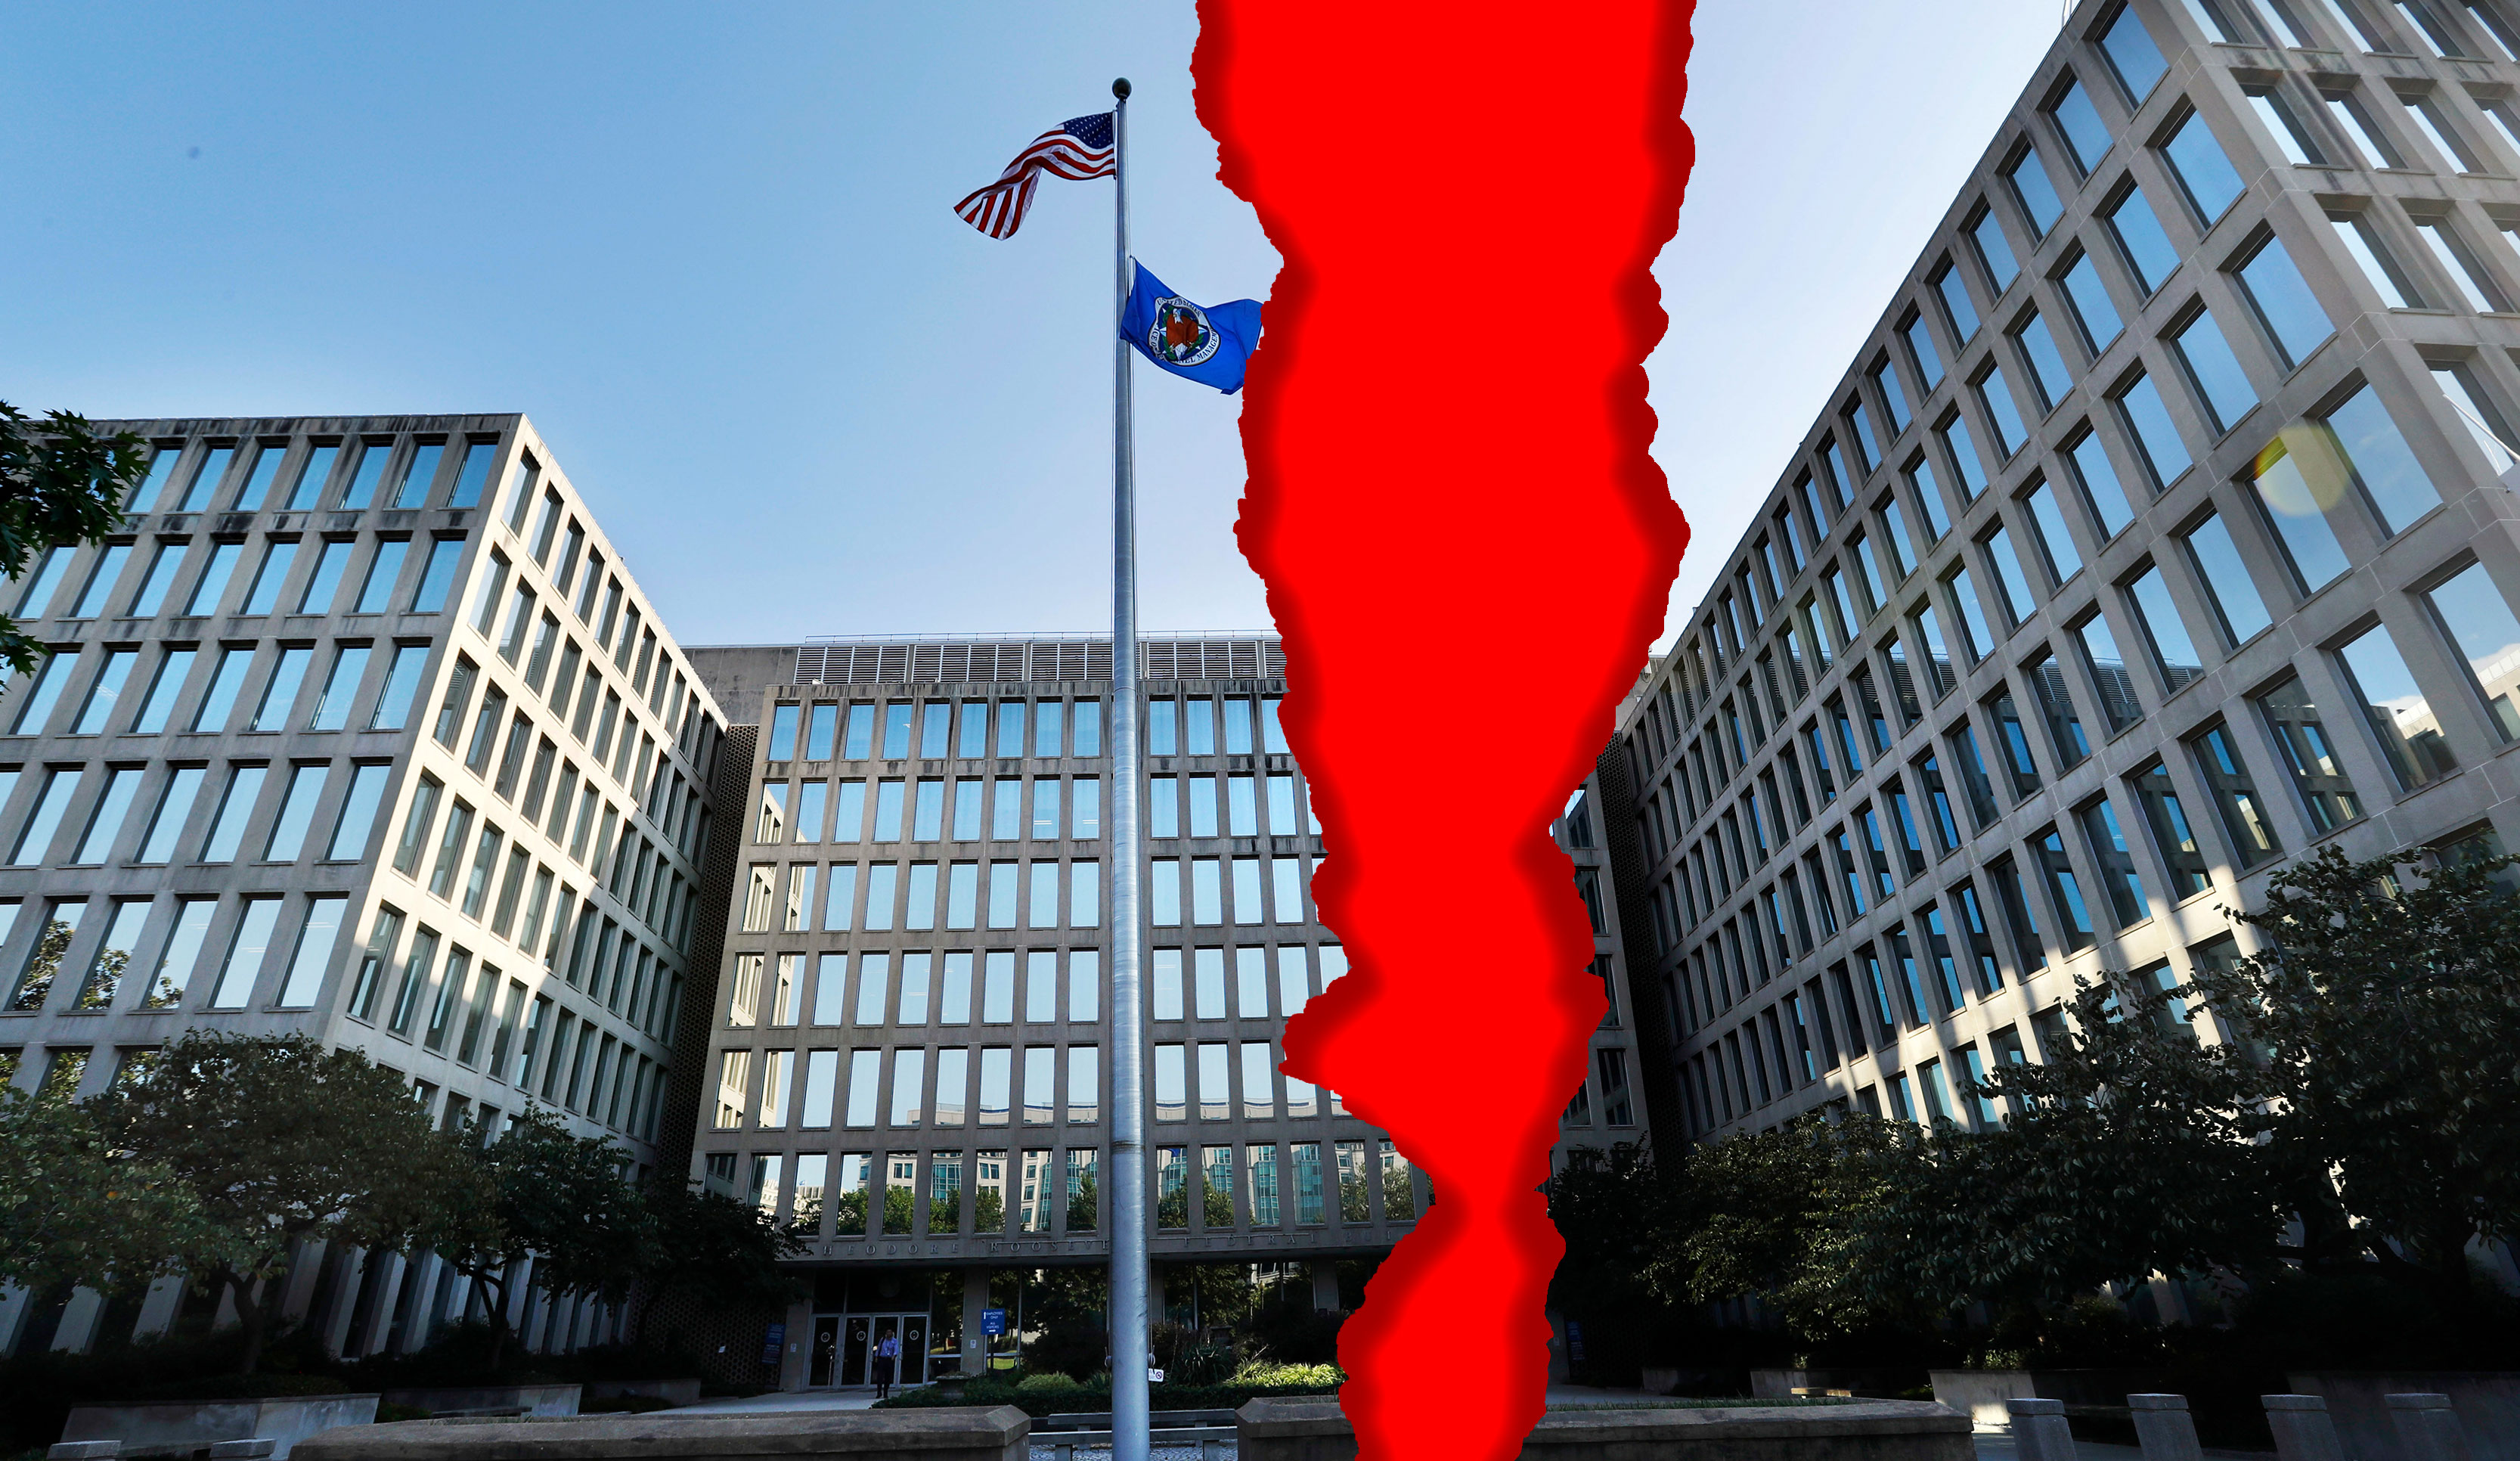 Members of the House Oversight and Reform Committee want the chance to interview agency officials to get the details of a plan to break up the Office of Personnel Management. (Jacquelyn Martin/AP; Illustration by Phillip Kightlinger/Staff)